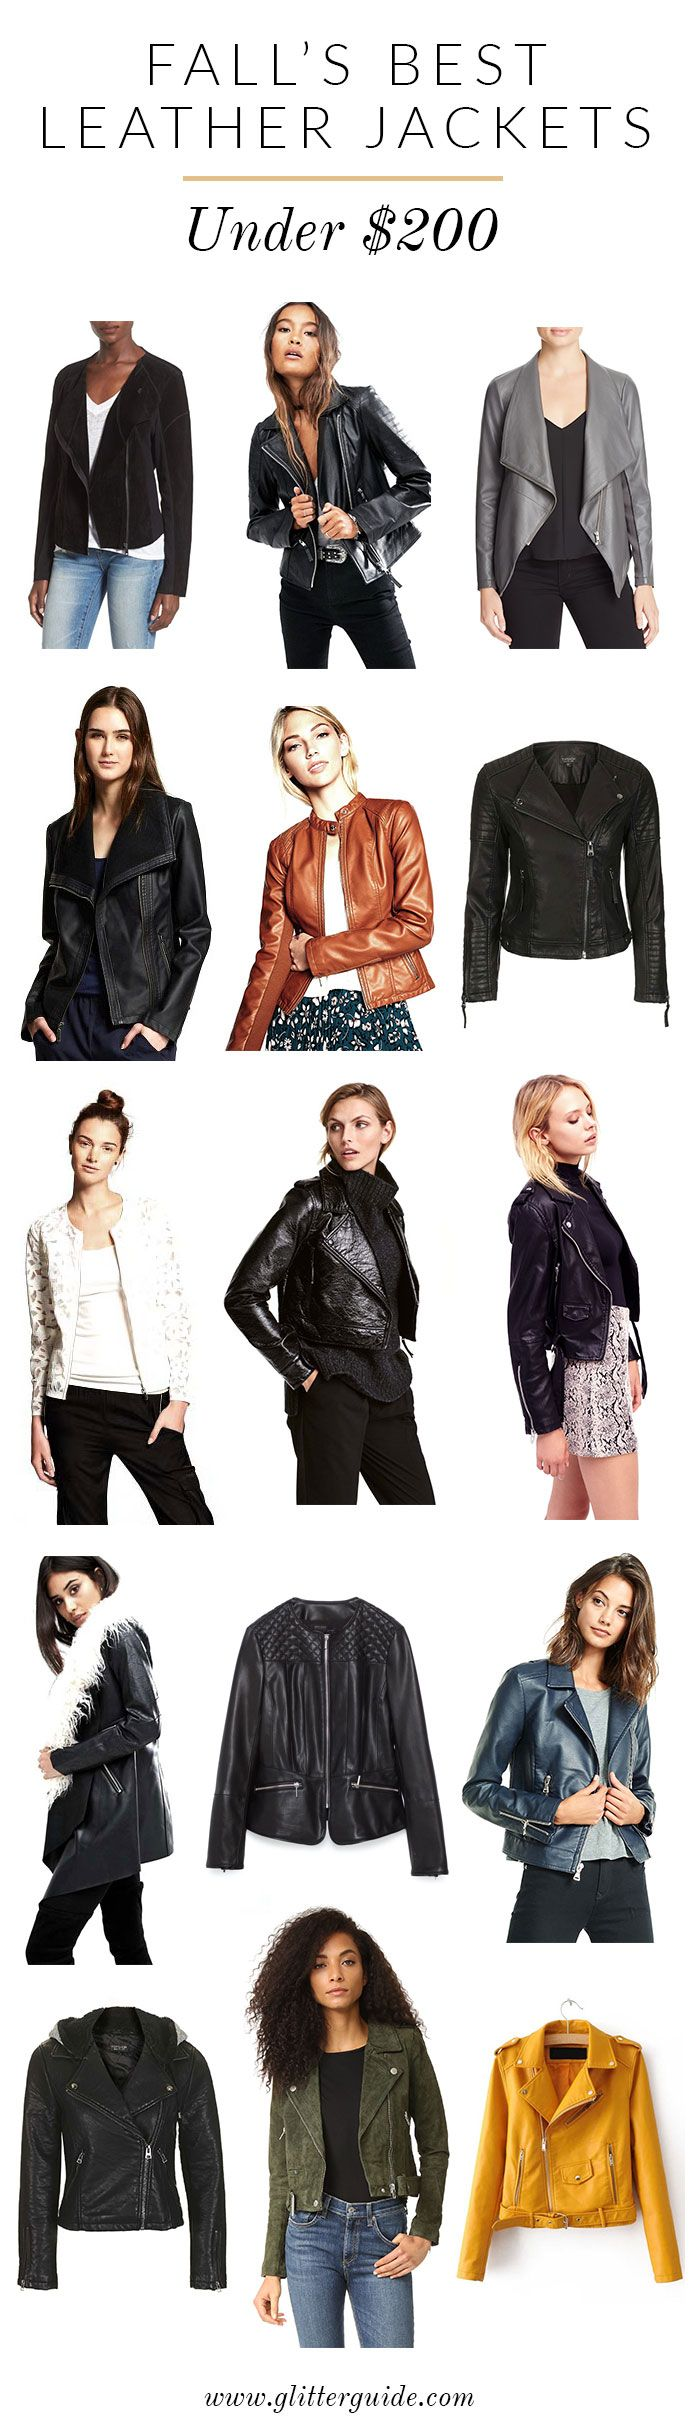 Leather jacket under 500 - Fall S Best Leather Jackets Under 200